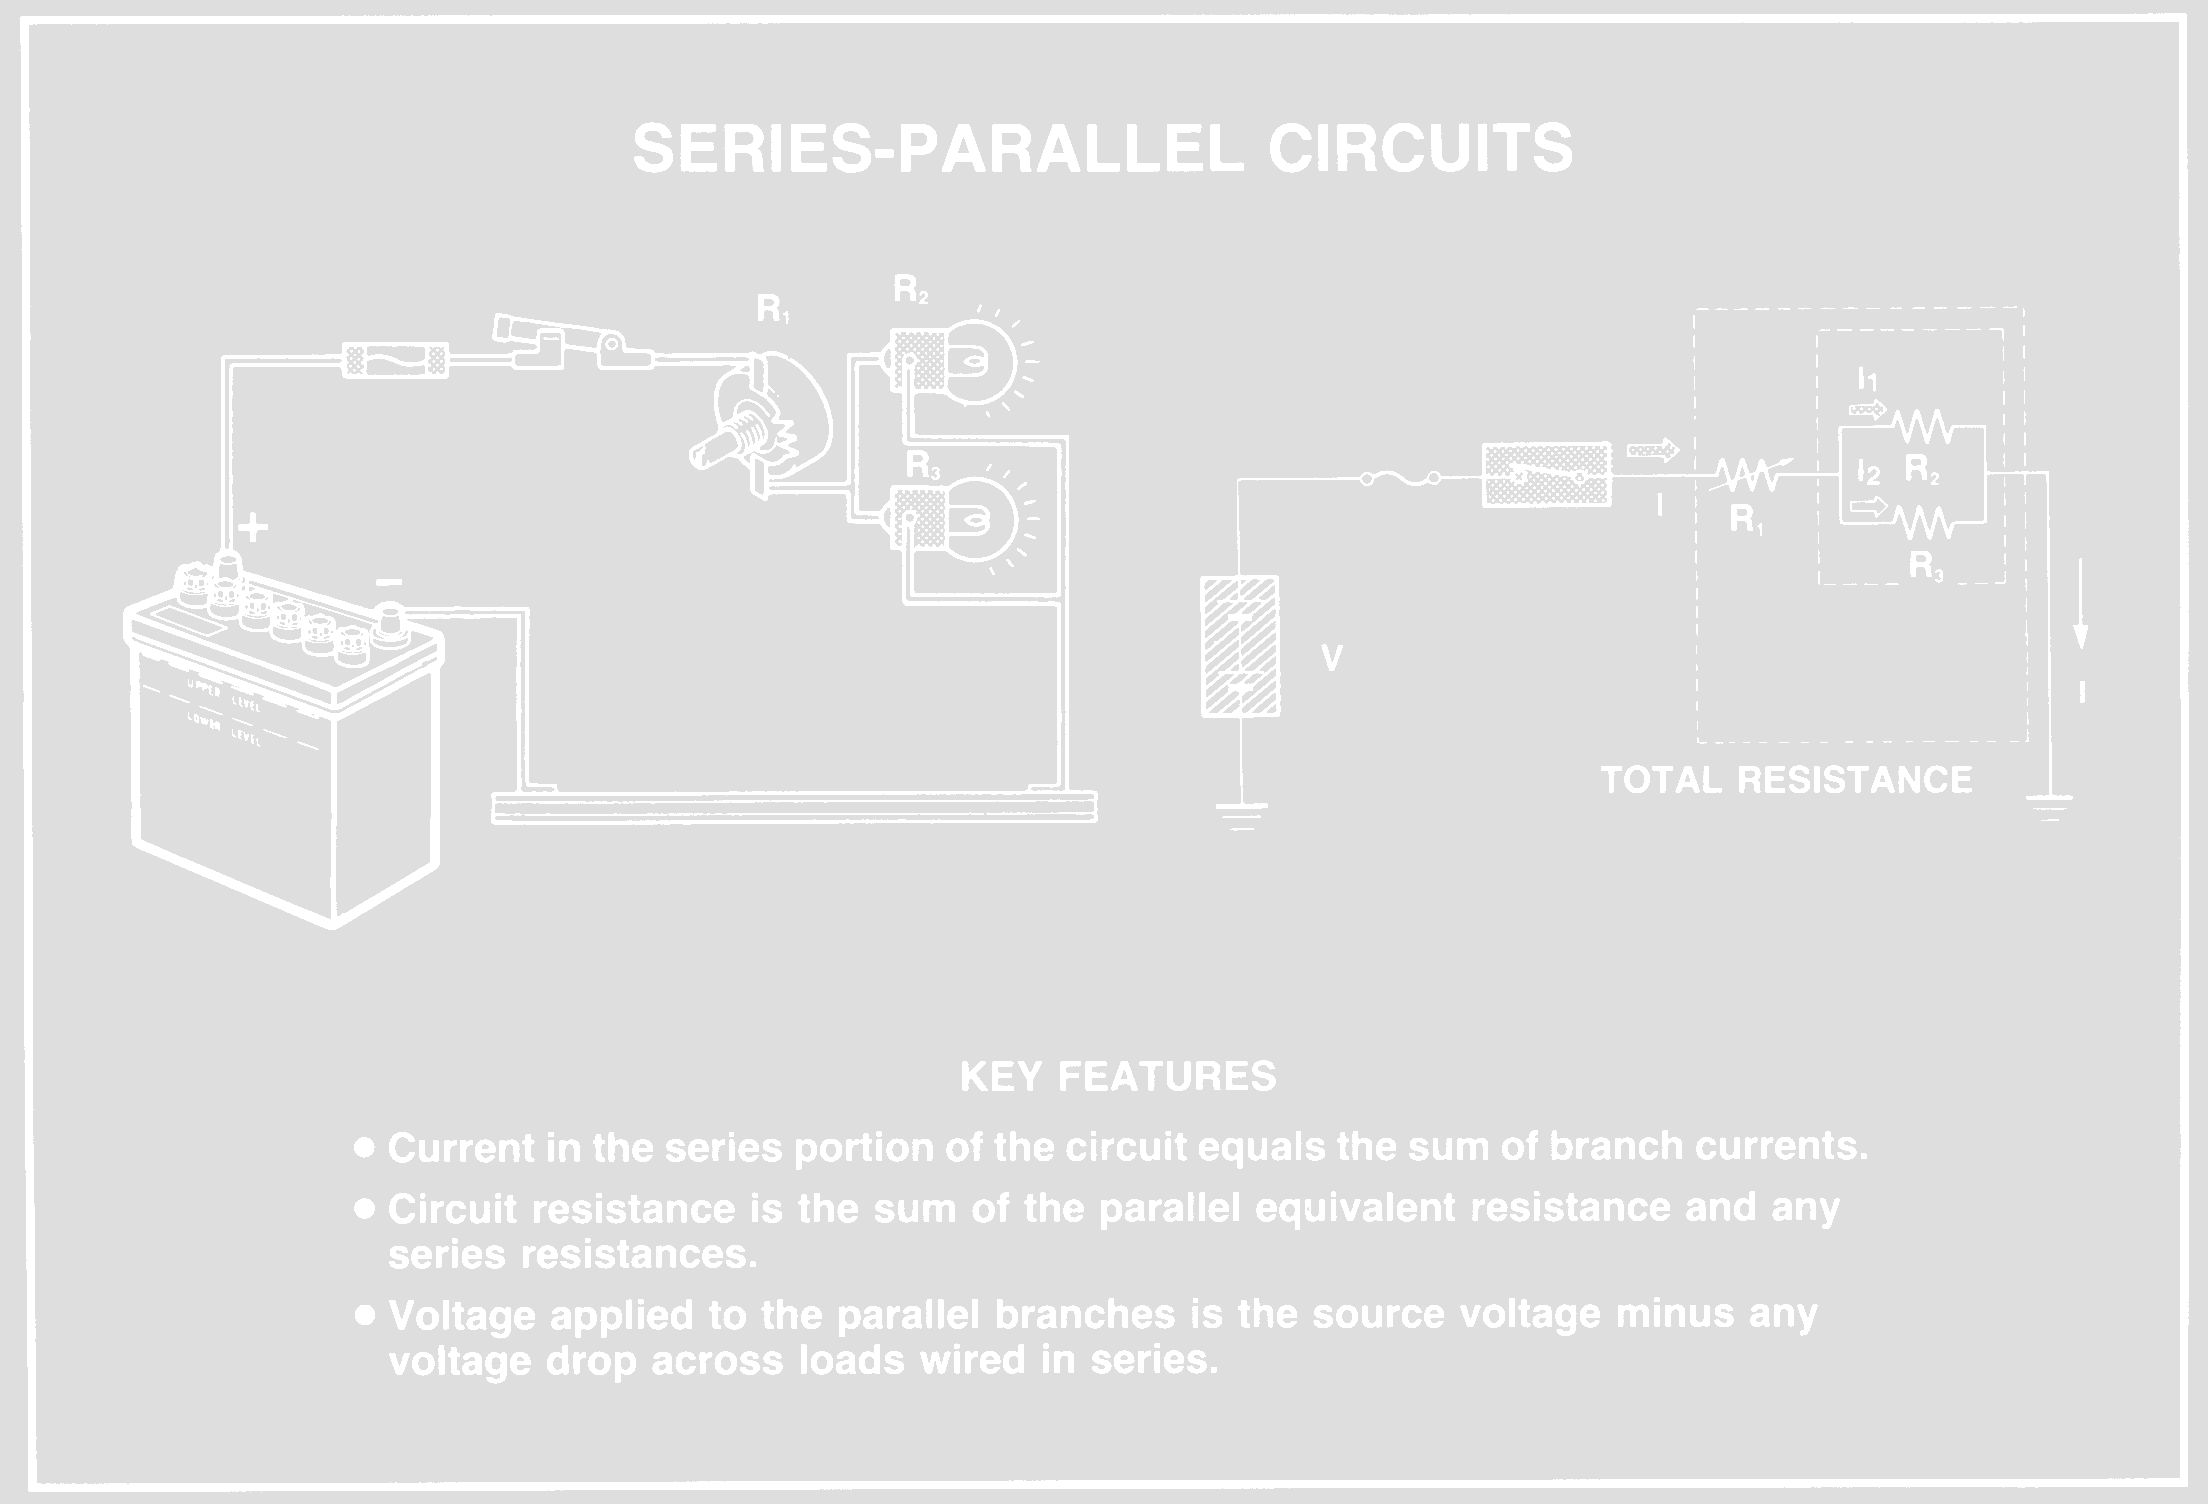 Electrical Circuits Listenlights What Are Series And Parallel In A Circuit Current Flows Through The Portion Of Then Splits To Flow Branches